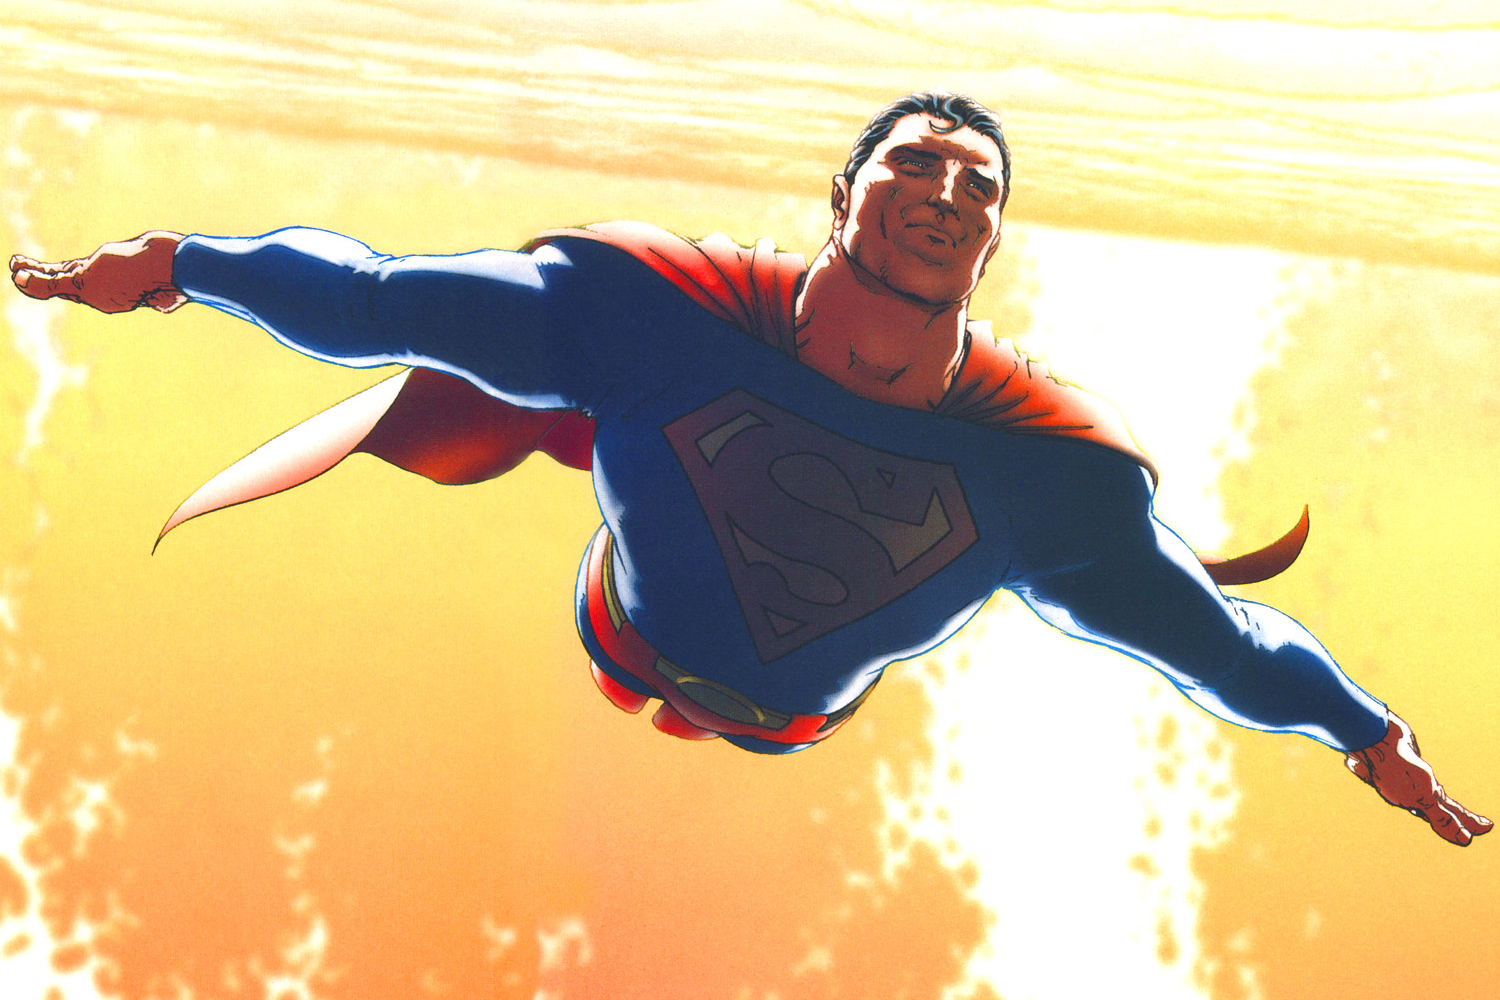 Or, Grant Morrison and Mark Waid's ploy to rebuild the Man of Steel.